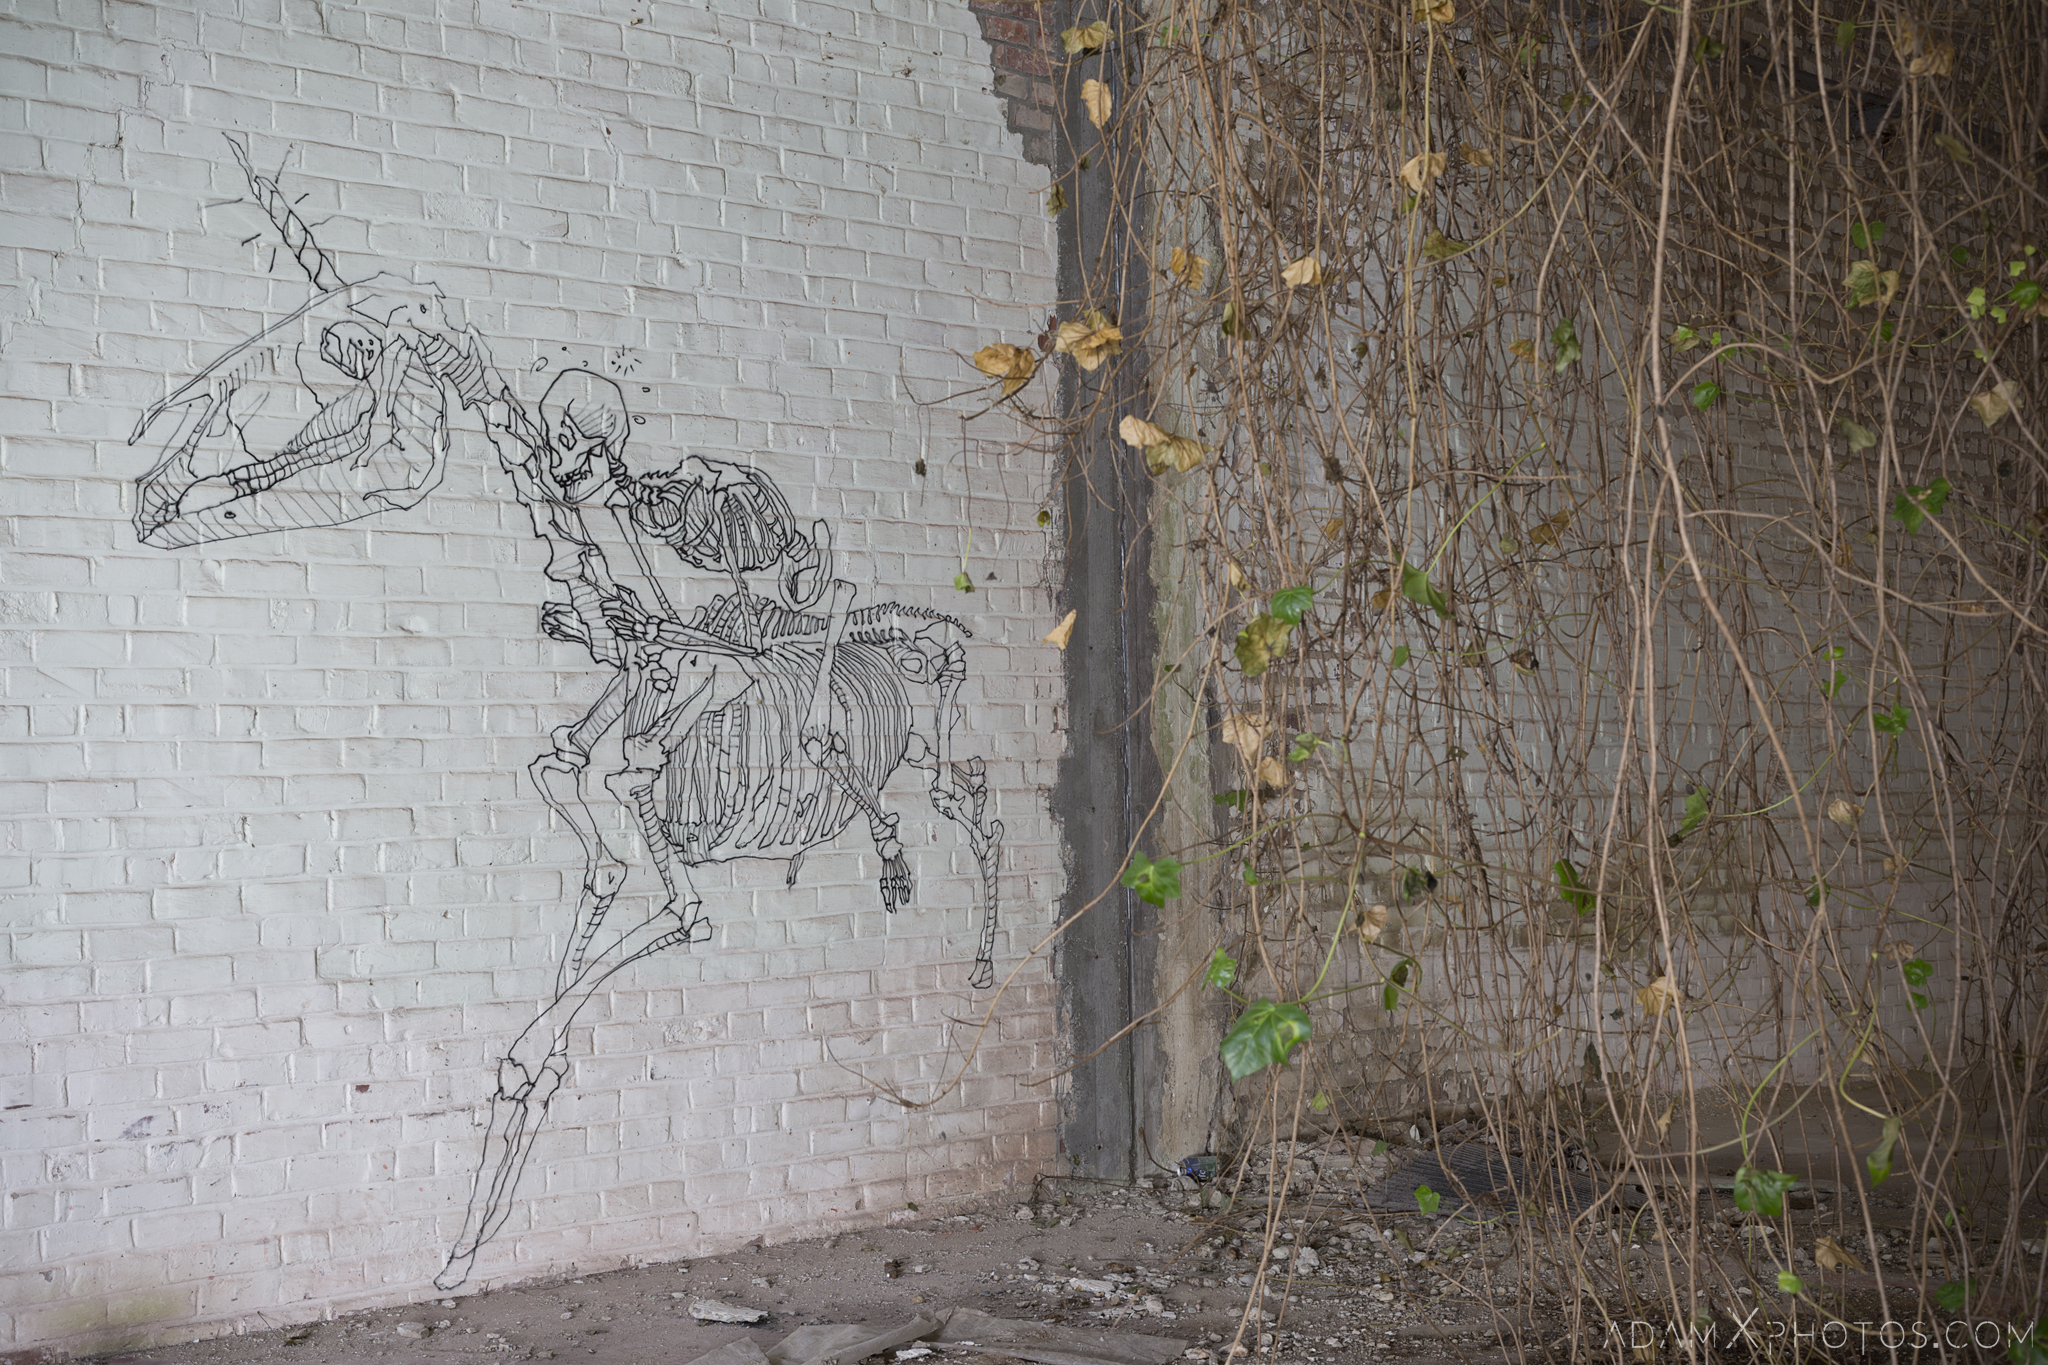 skeleton horseman horse rider unicorn Overgrown squatters Usine Skeleton factory ROA Klaas Van der Linden Adam X Urbex Urban Exploration Belgium Access 2017 Abandoned decay lost forgotten derelict location creepy haunting eerie